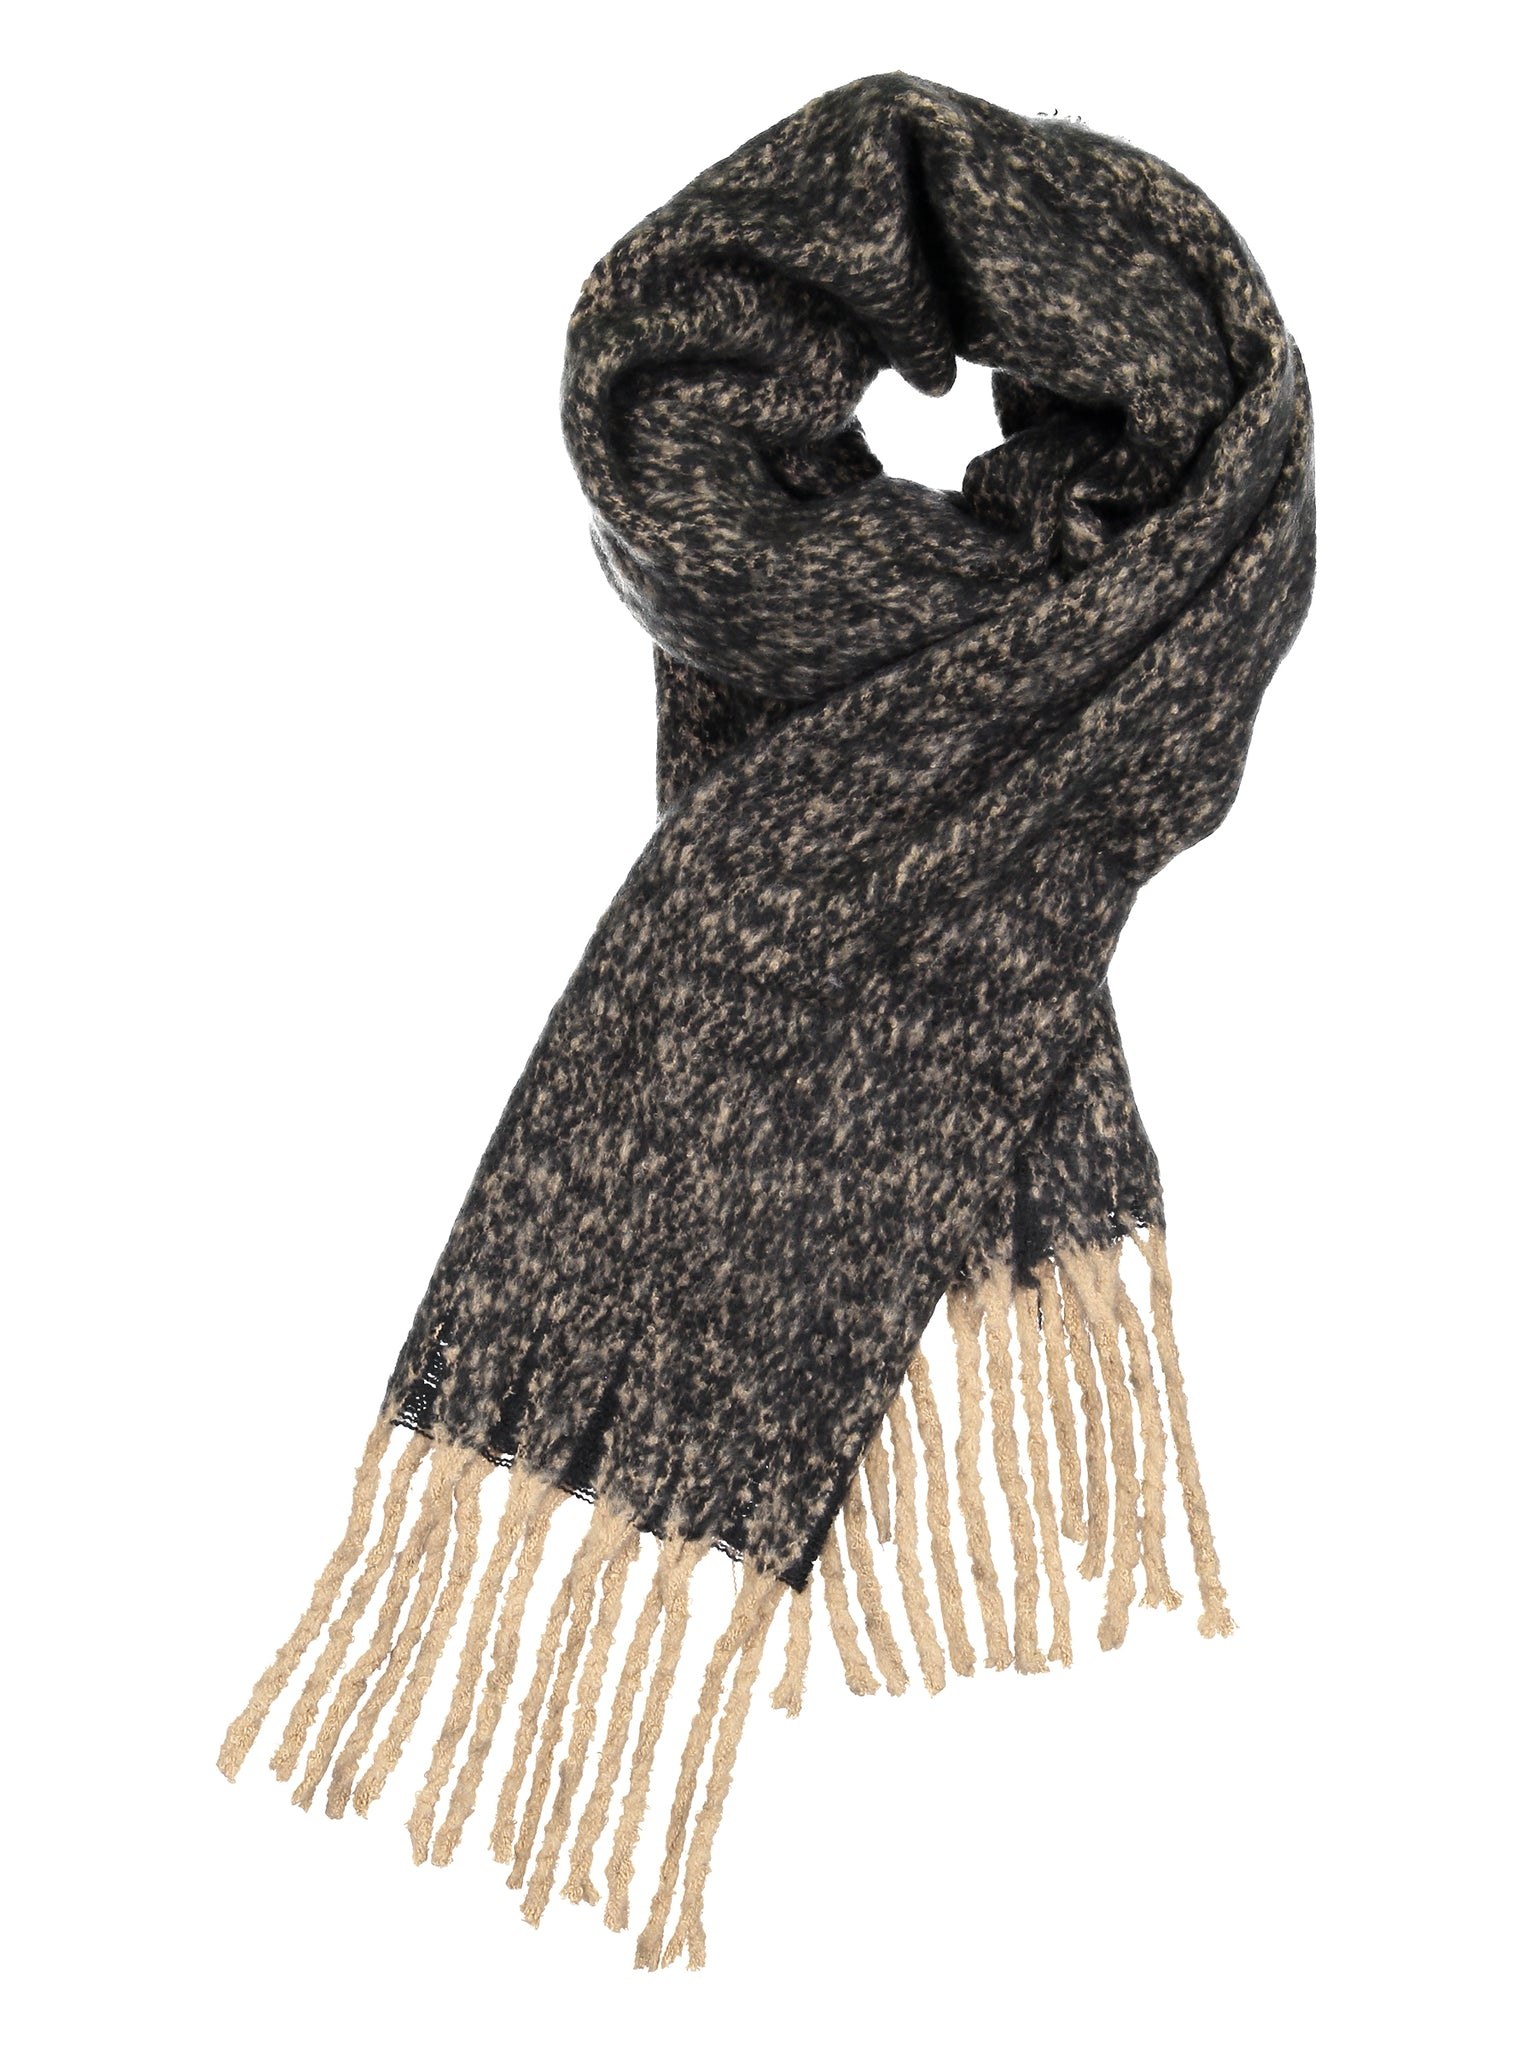 Ellis Plush Oblong Scarf